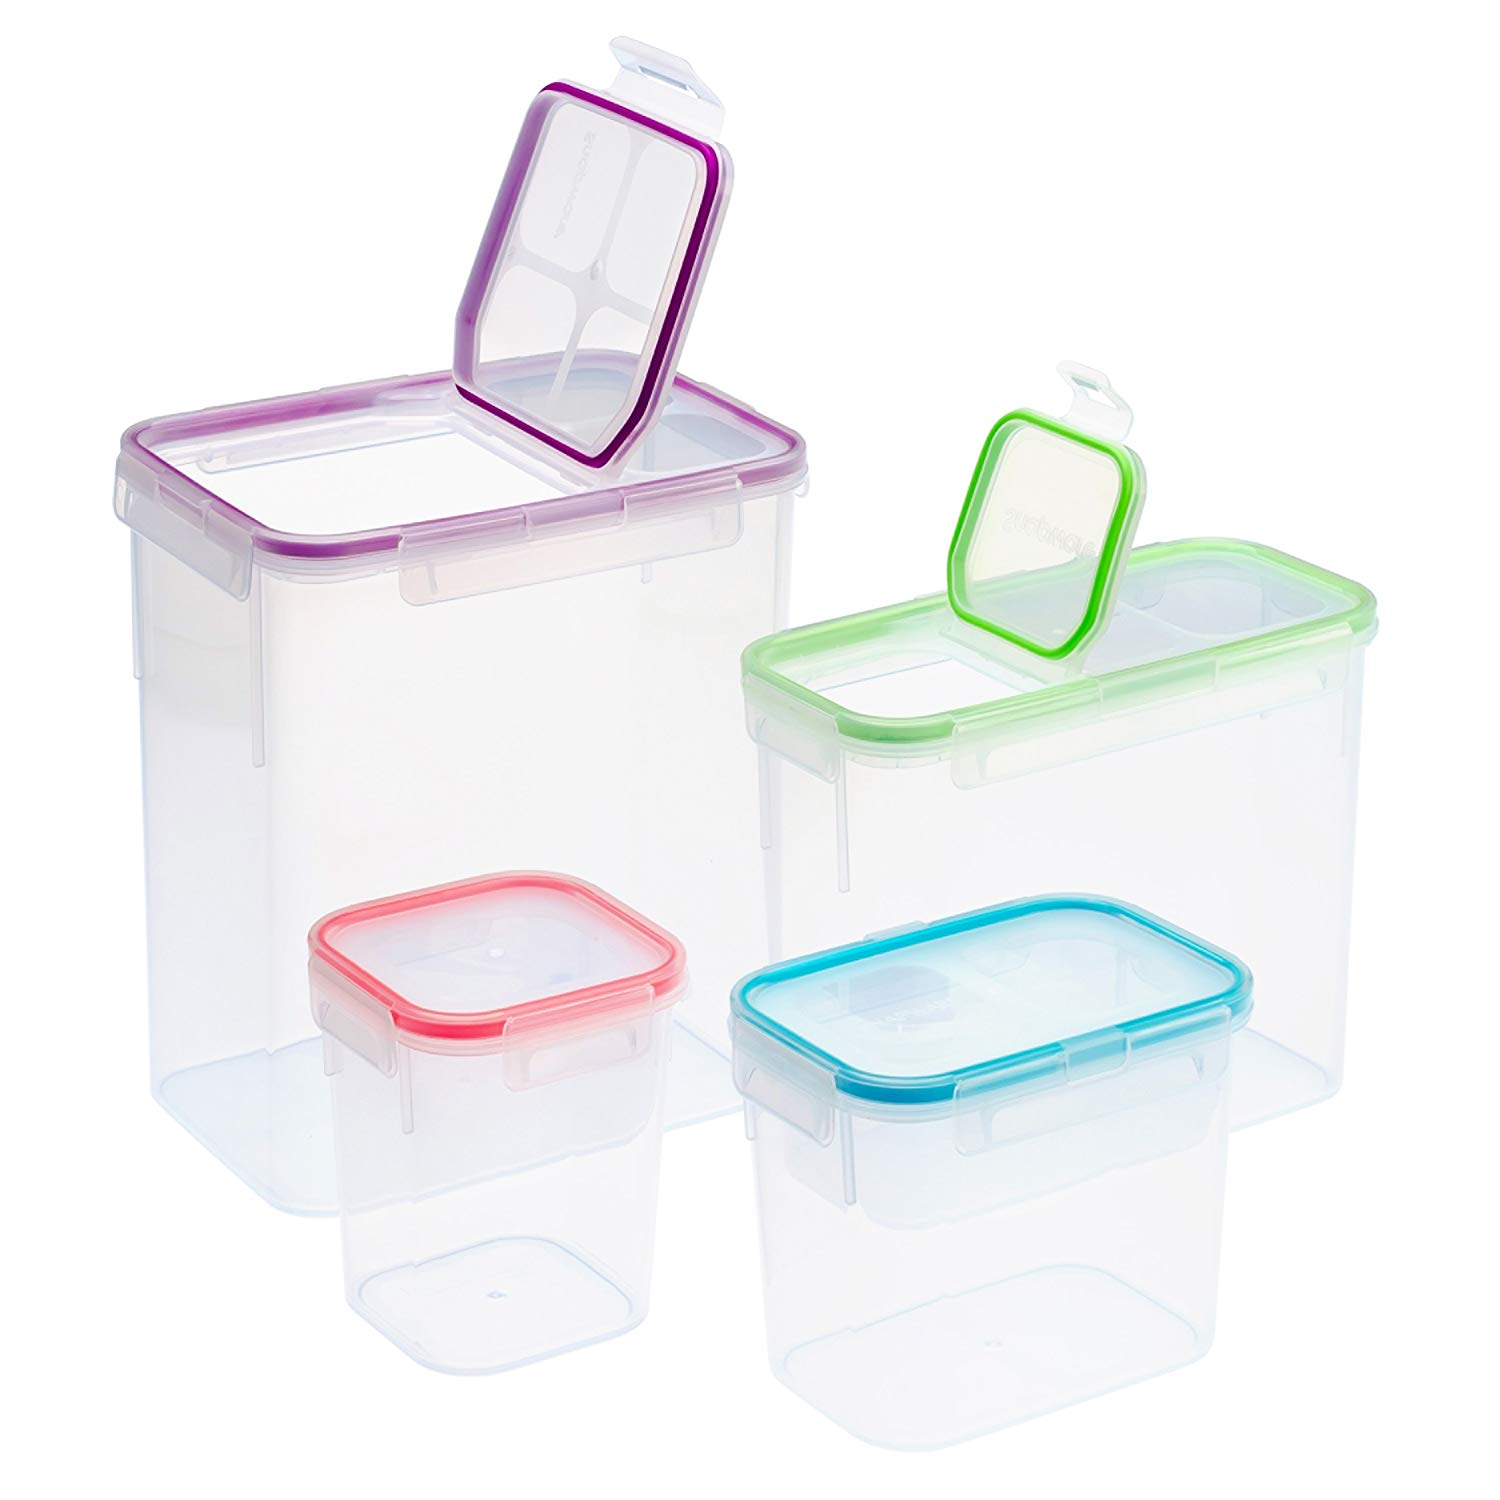 Snapware® 40 Cup Square Airtight Food Storage Container w/ Handle ITEM# 1098437